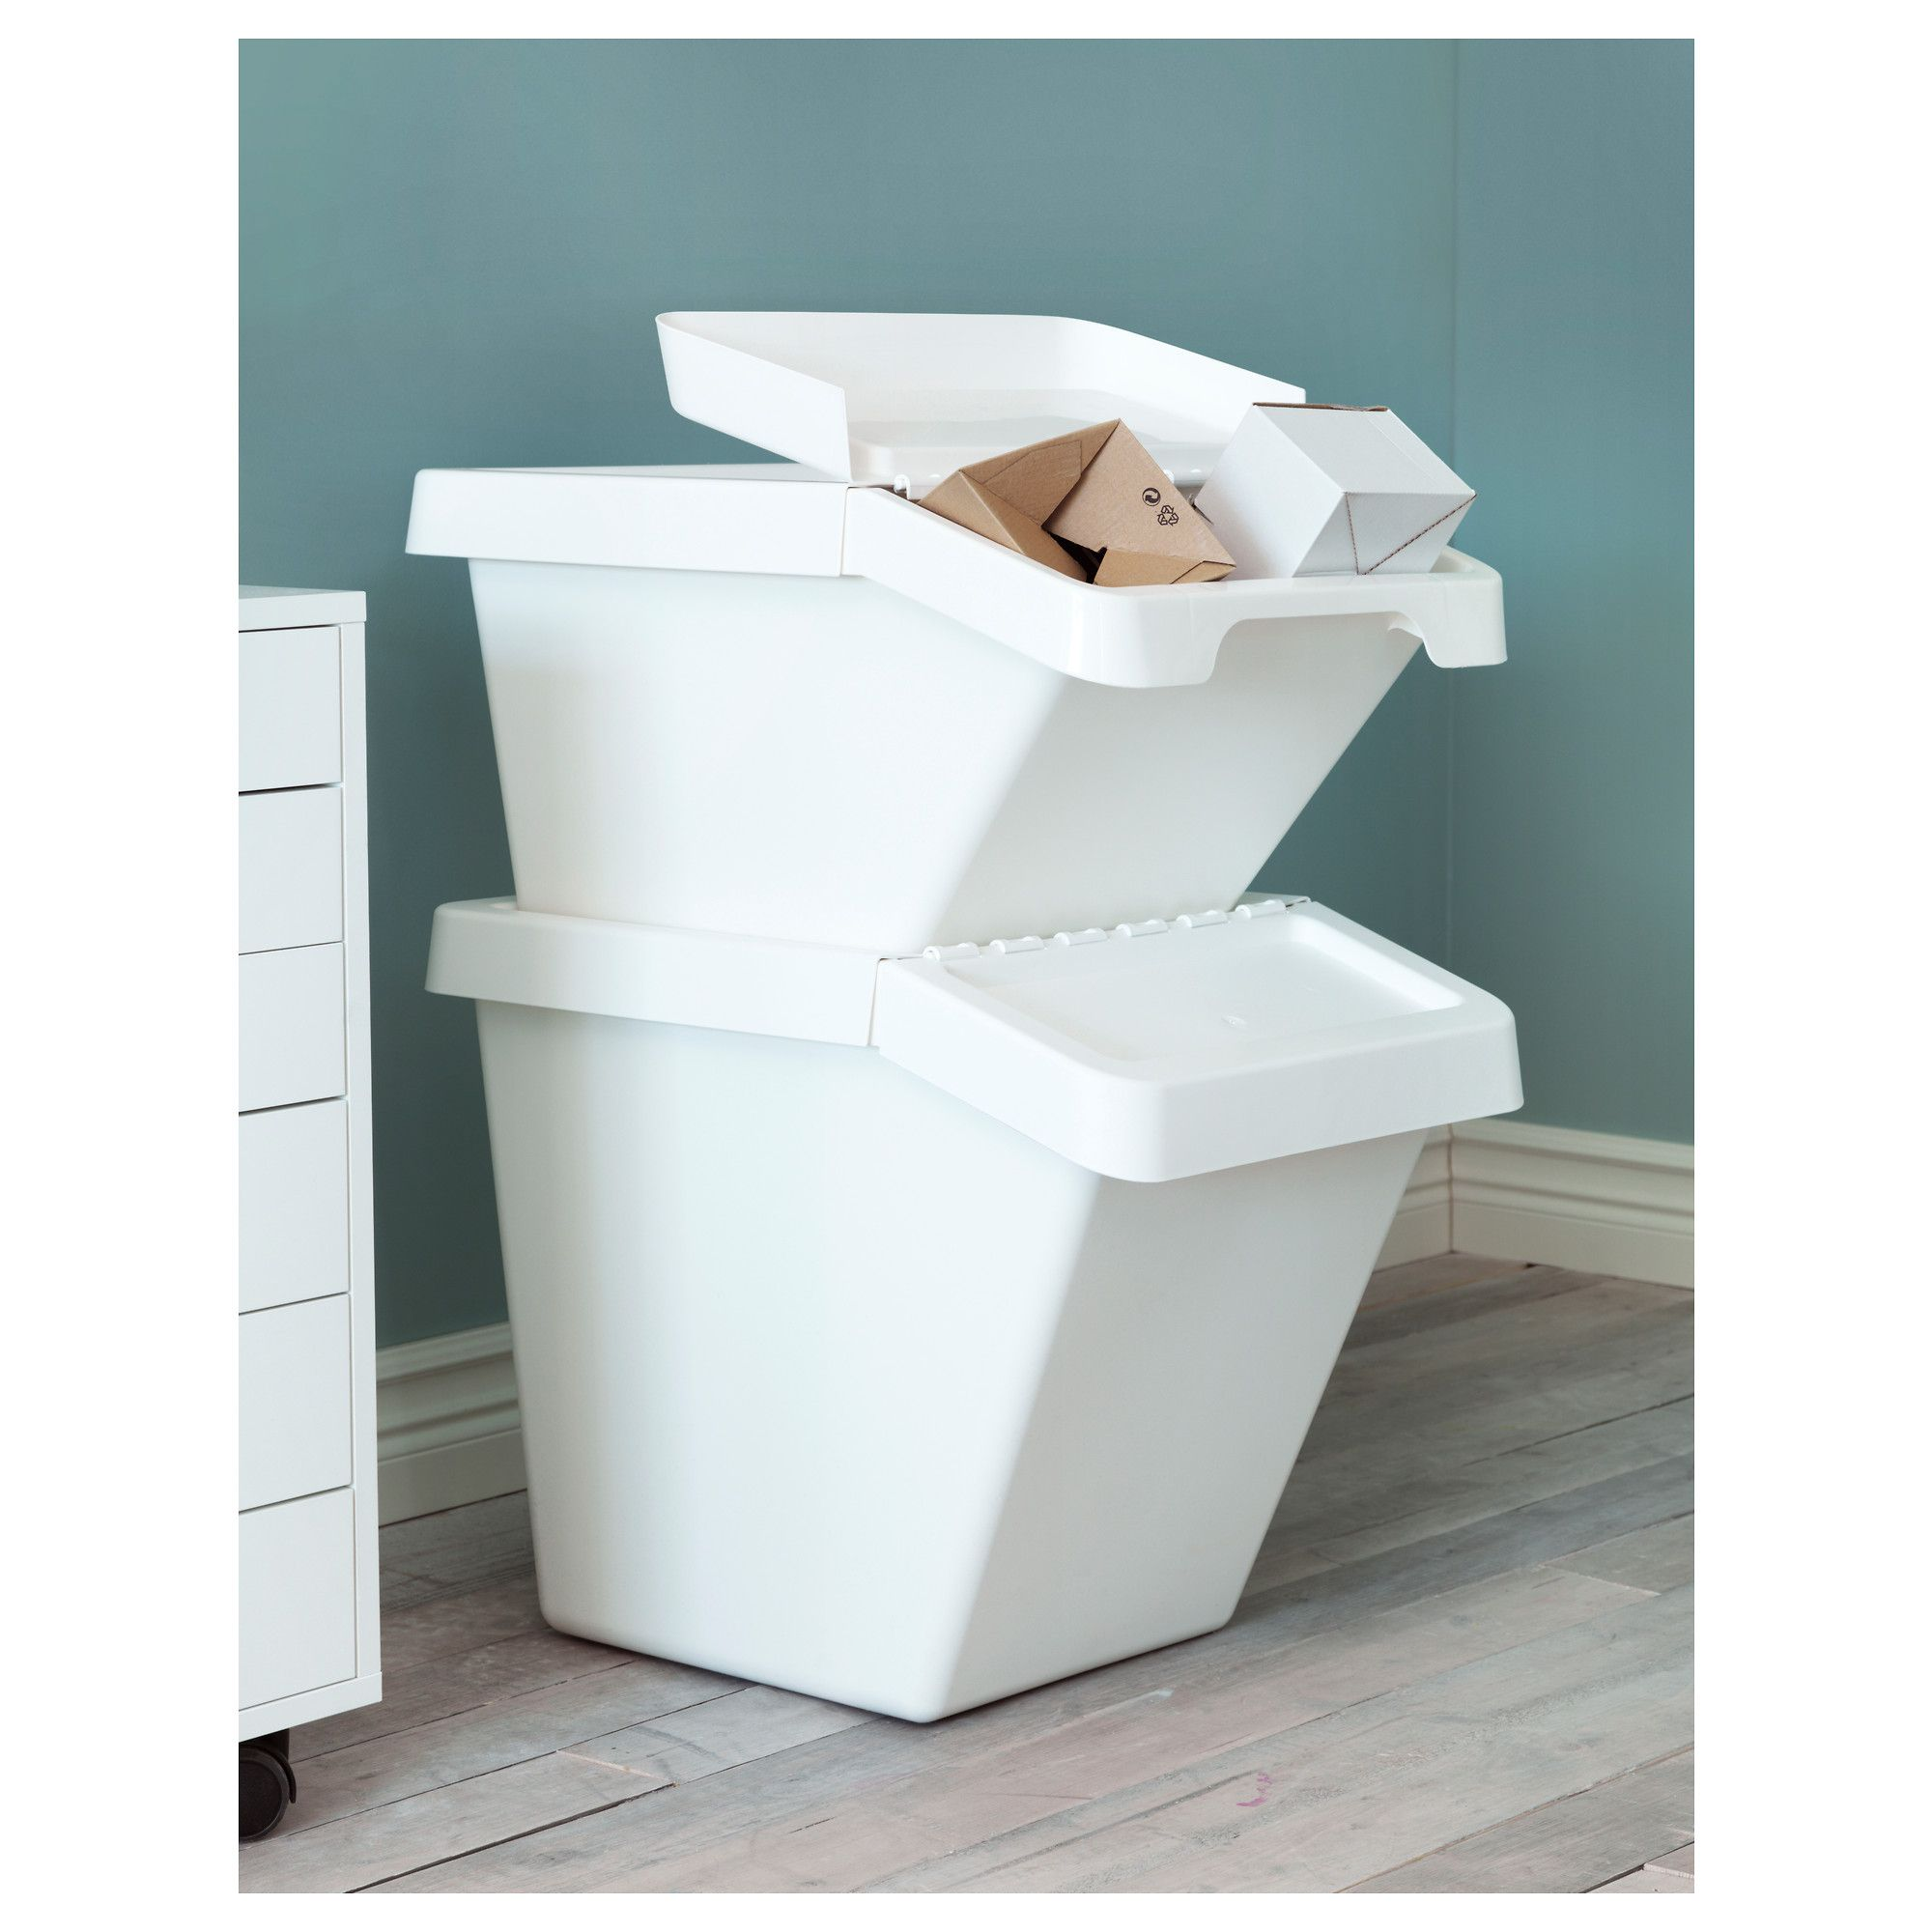 SORTERA Recycling bin with lid, white | Organizations, Storage and ...